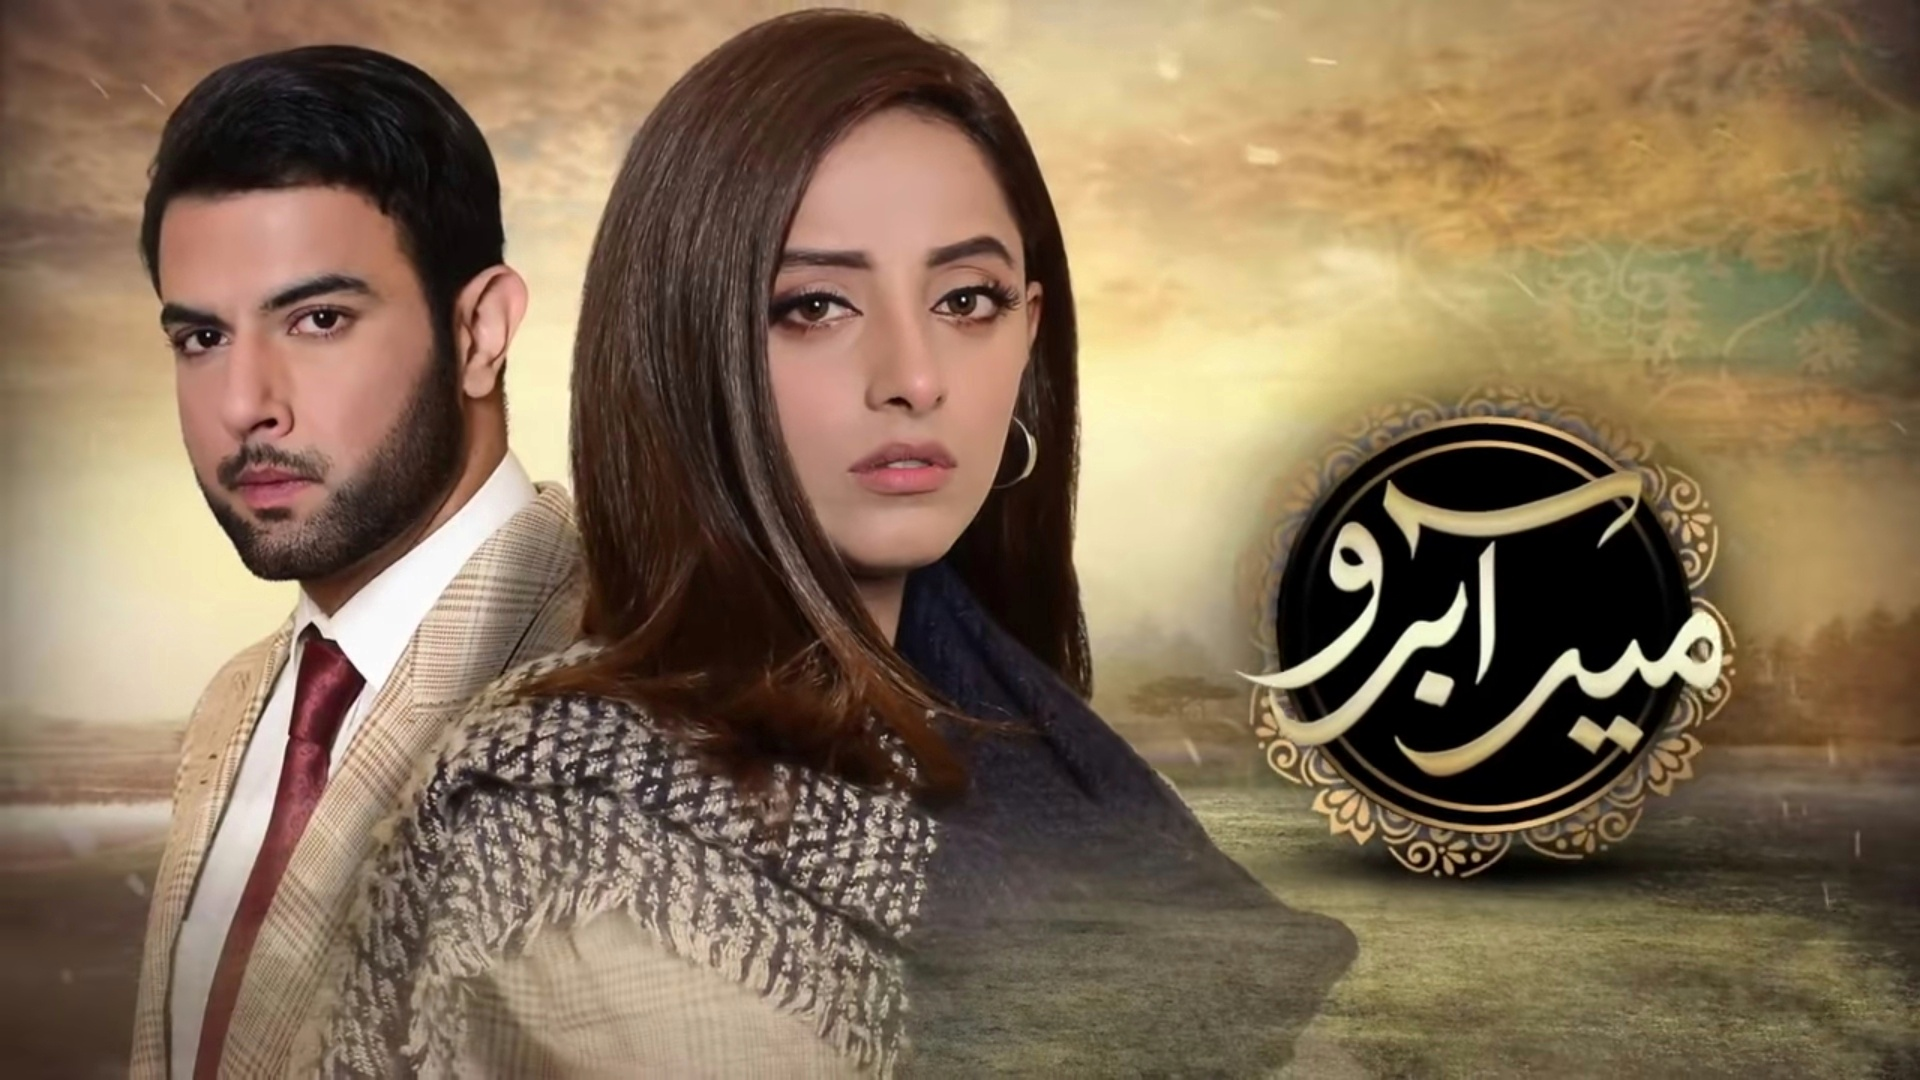 Meer Abru Episode 11 & 12 Story Review - So Far So Good